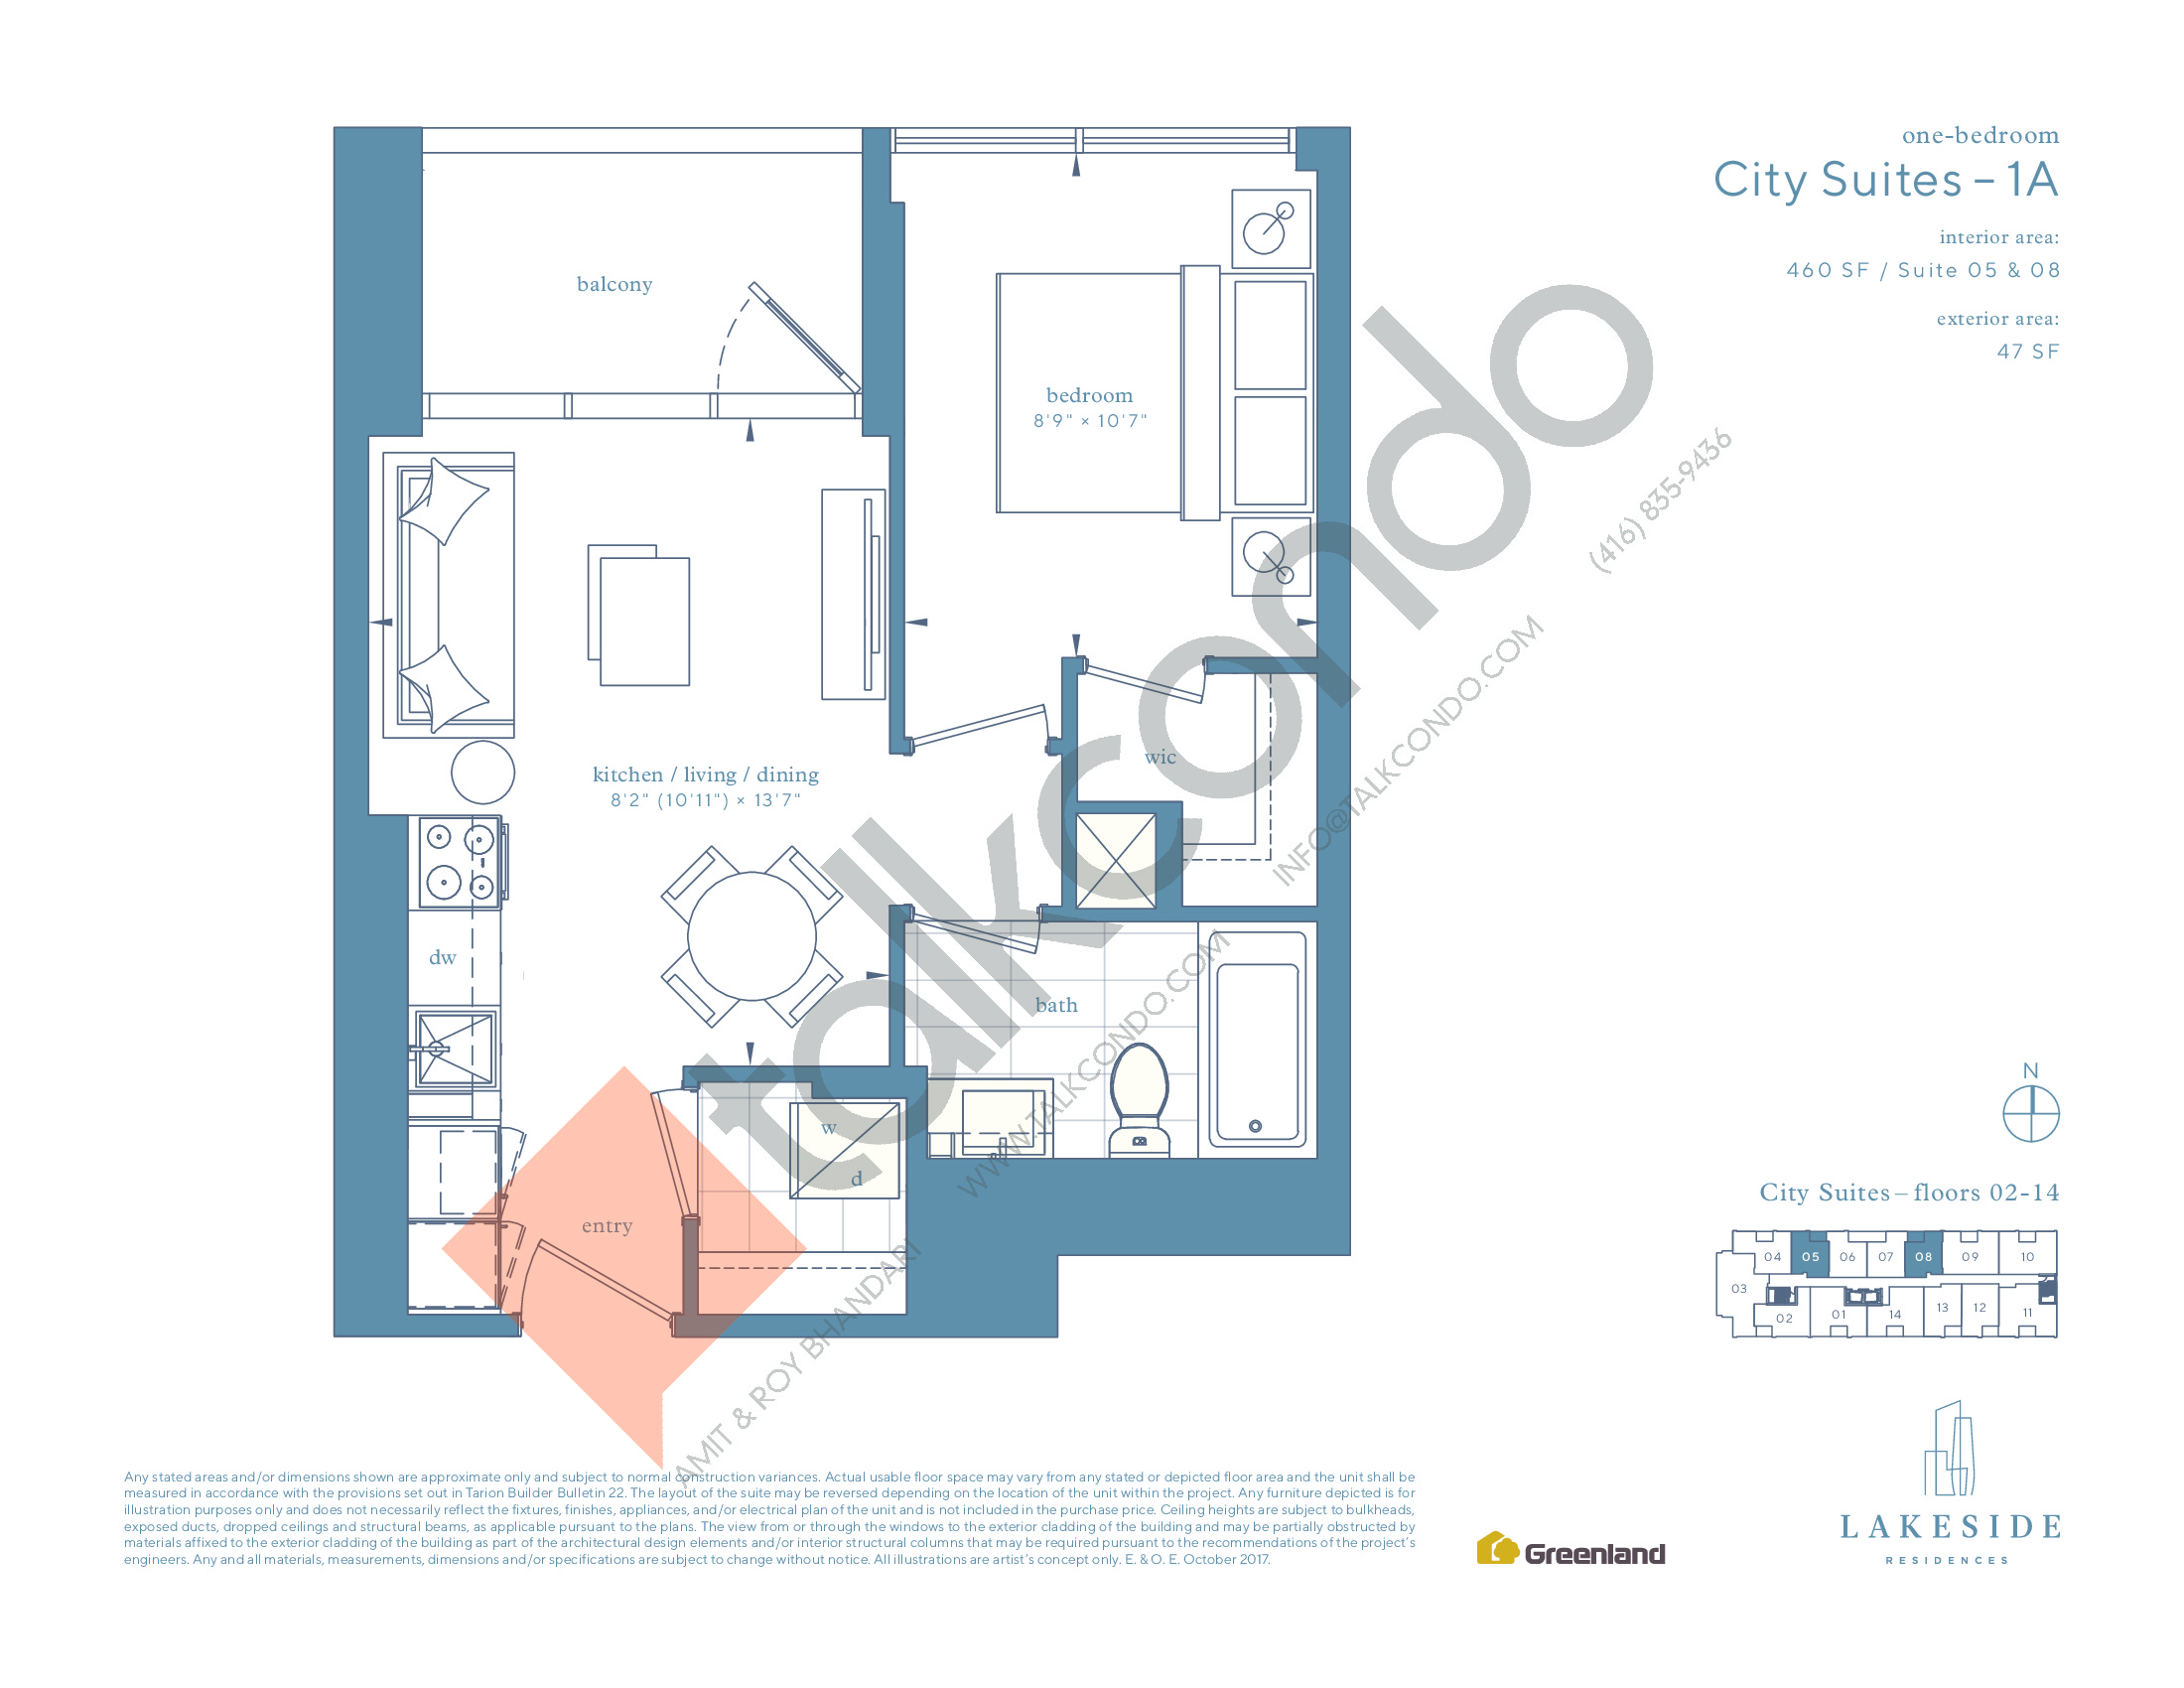 City Suites - 1A Floor Plan at Lakeside Residences - 460 sq.ft